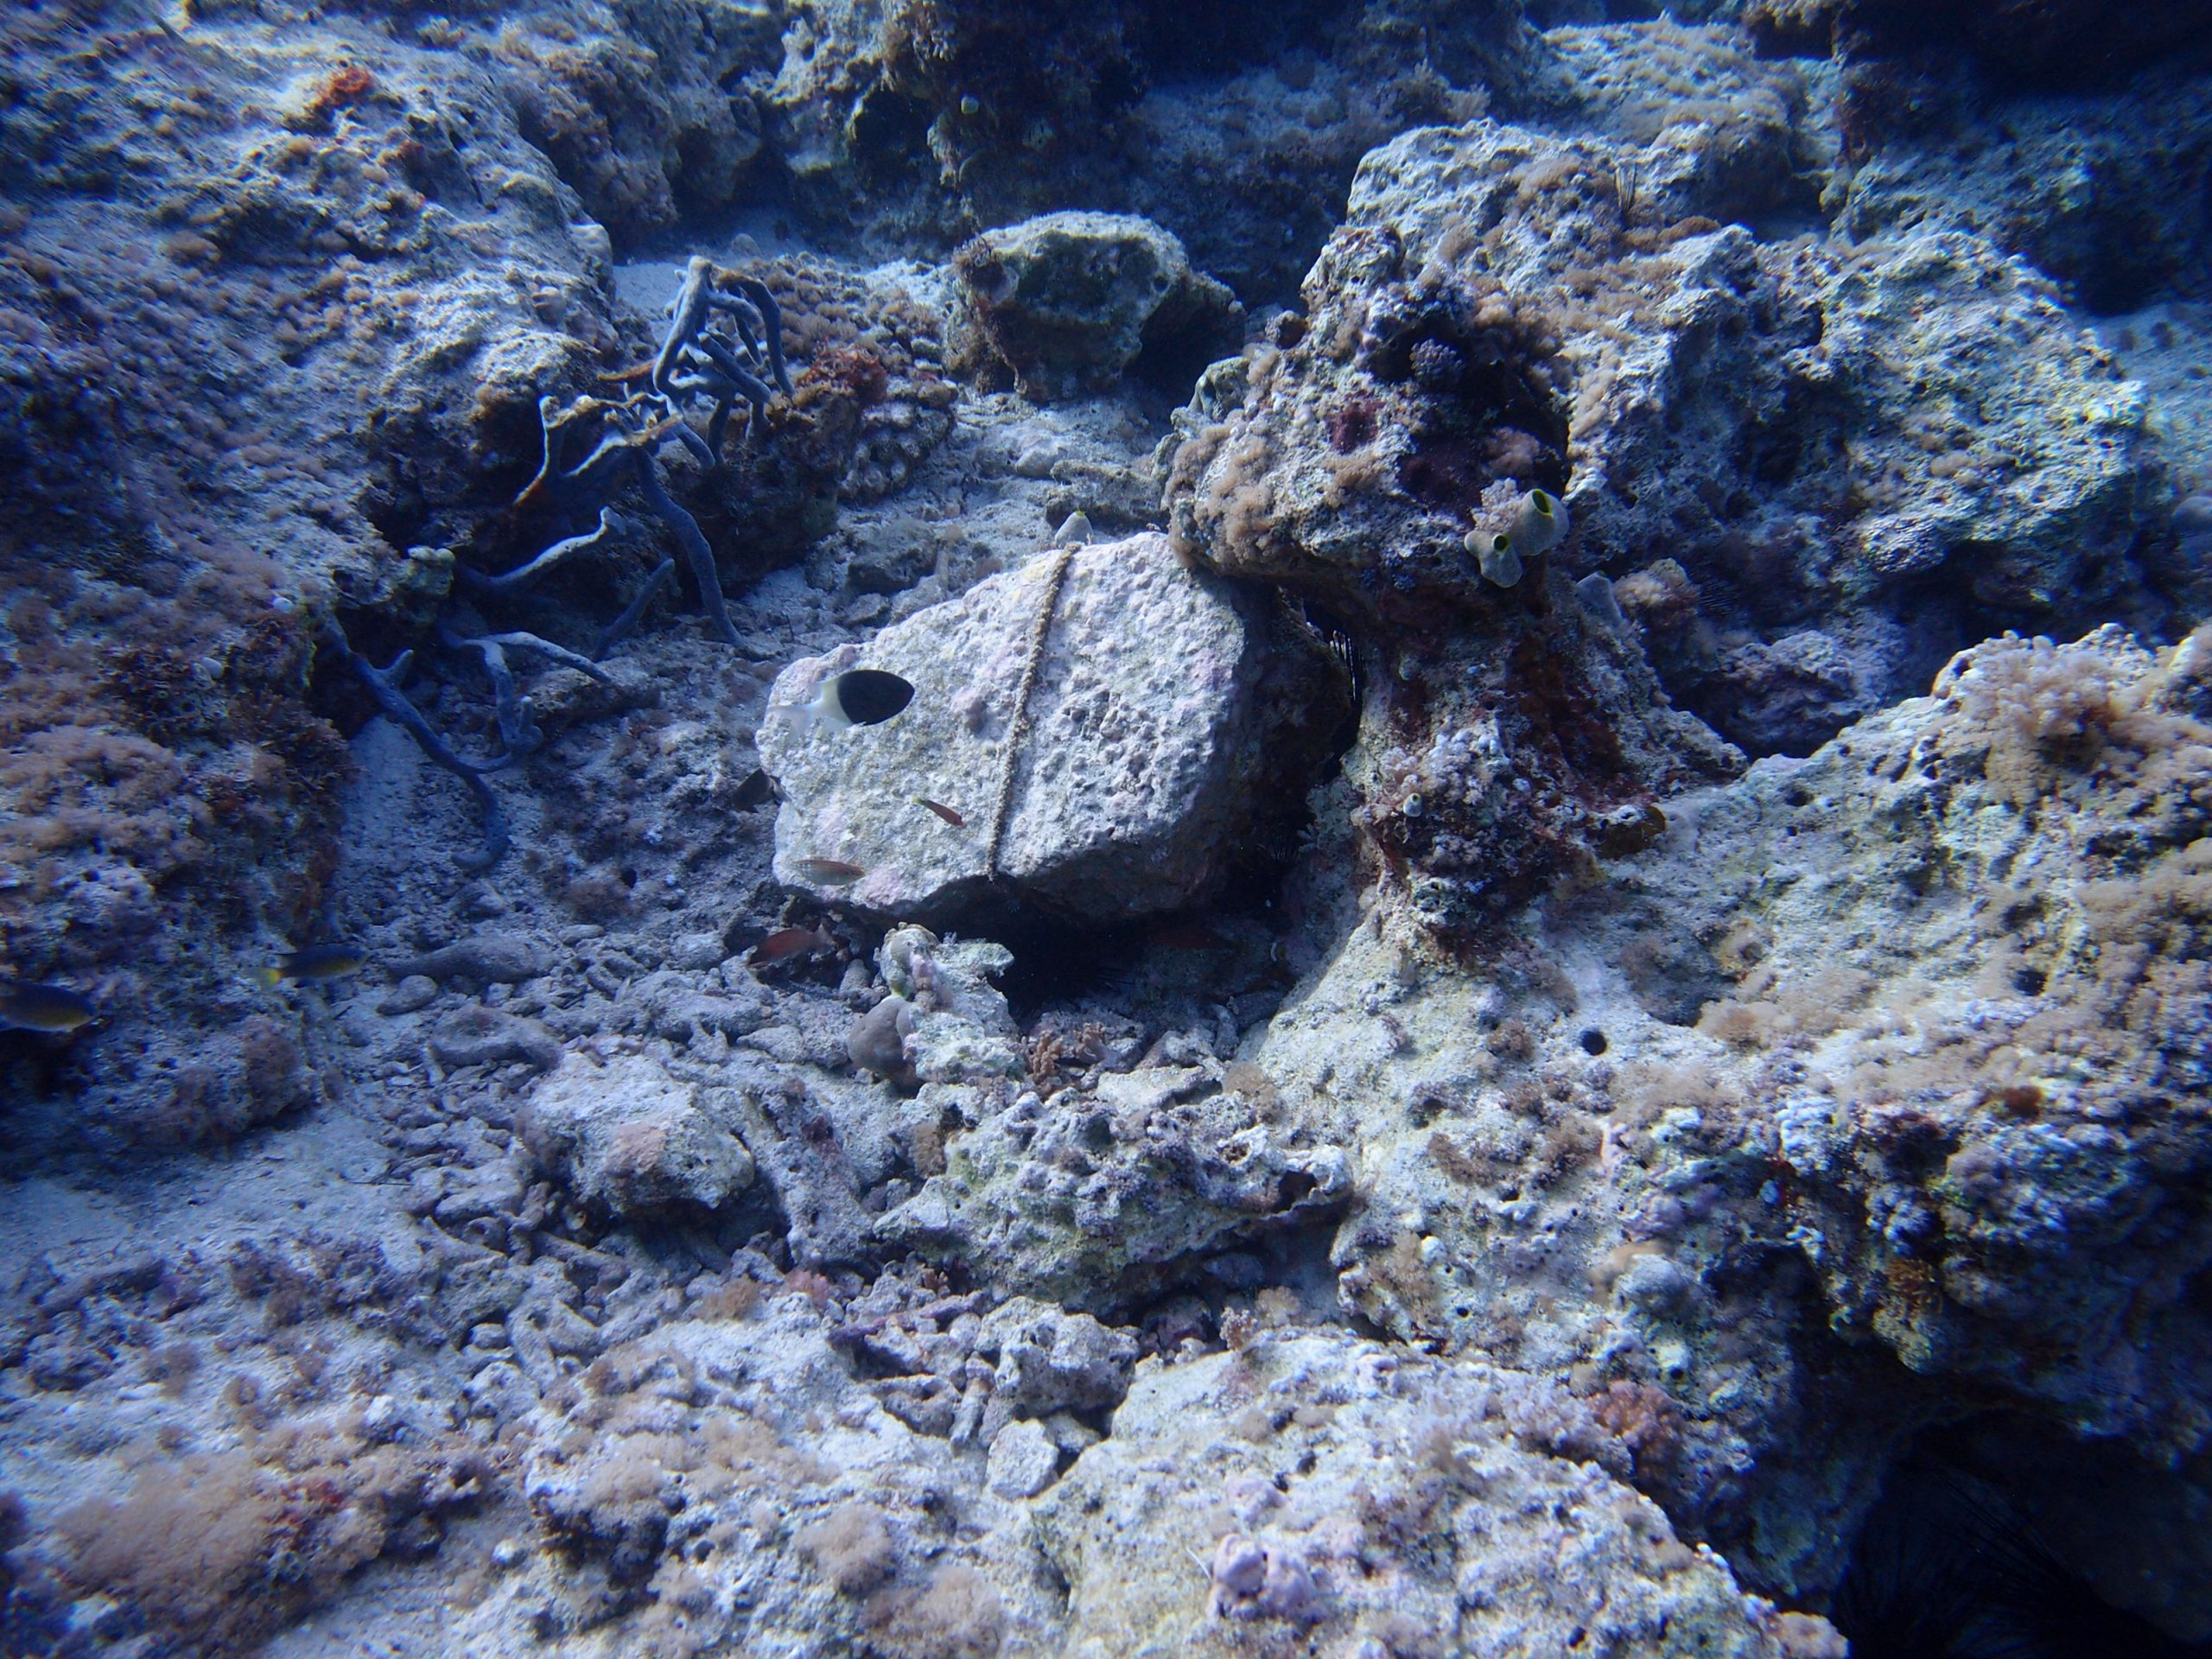 An anchor stone that has landed in the middle of some corals, destroying them